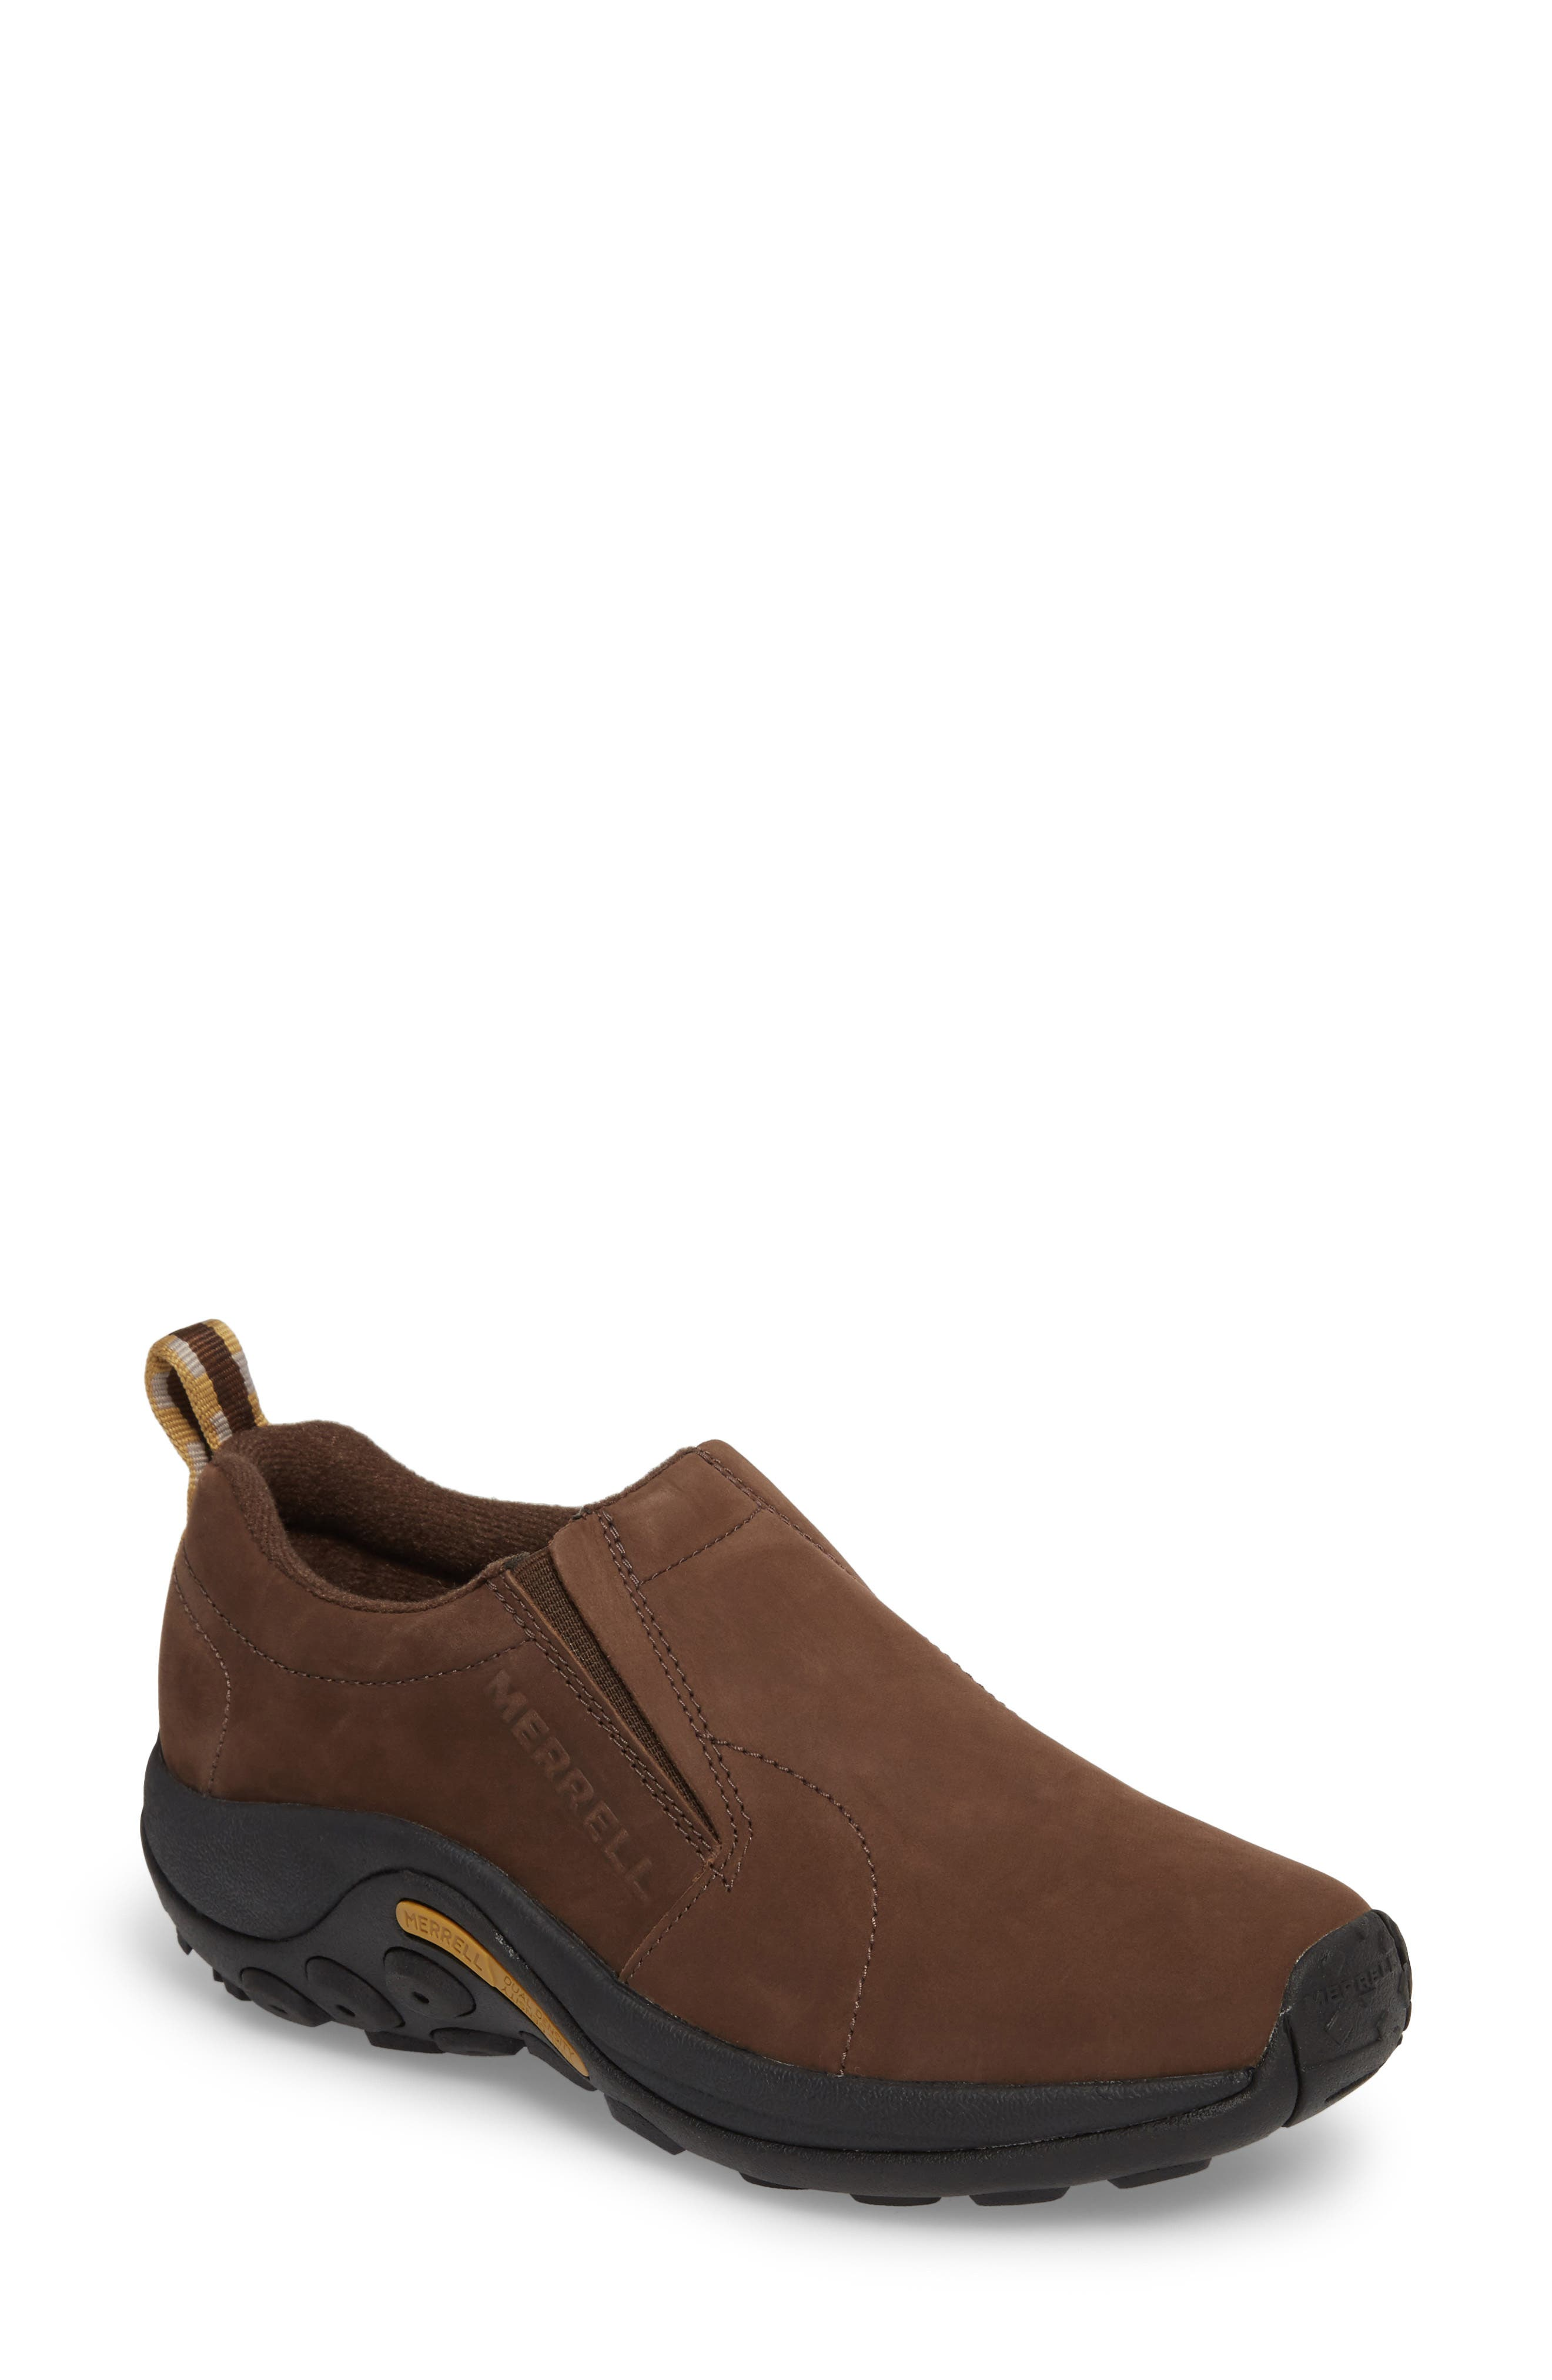 Alternate Image 1 Selected - Merrell Jungle Moc Sneaker (Women)